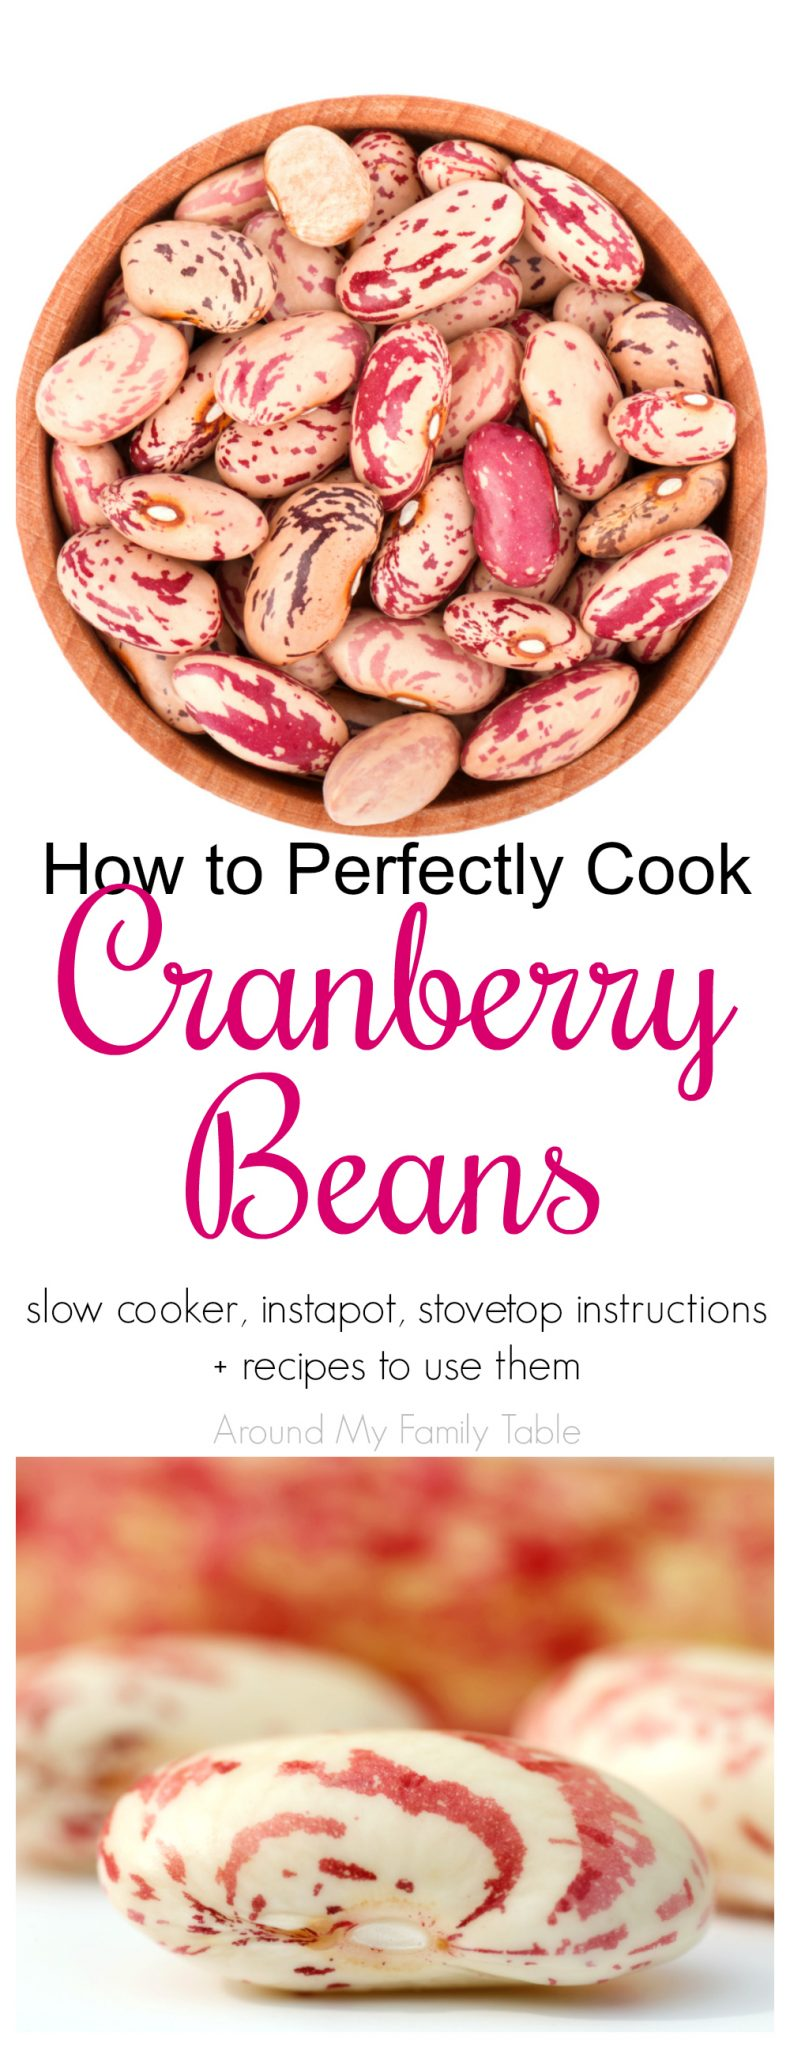 Everything you've wanted to know about Cranberry Beans. This How to Cook: Cranberry Beans guide features instructions on using a slow cooker, pressure cooker, instantpot, and stovetop for cooking cranberry beans plus there are a few delicious recipes to try as well.